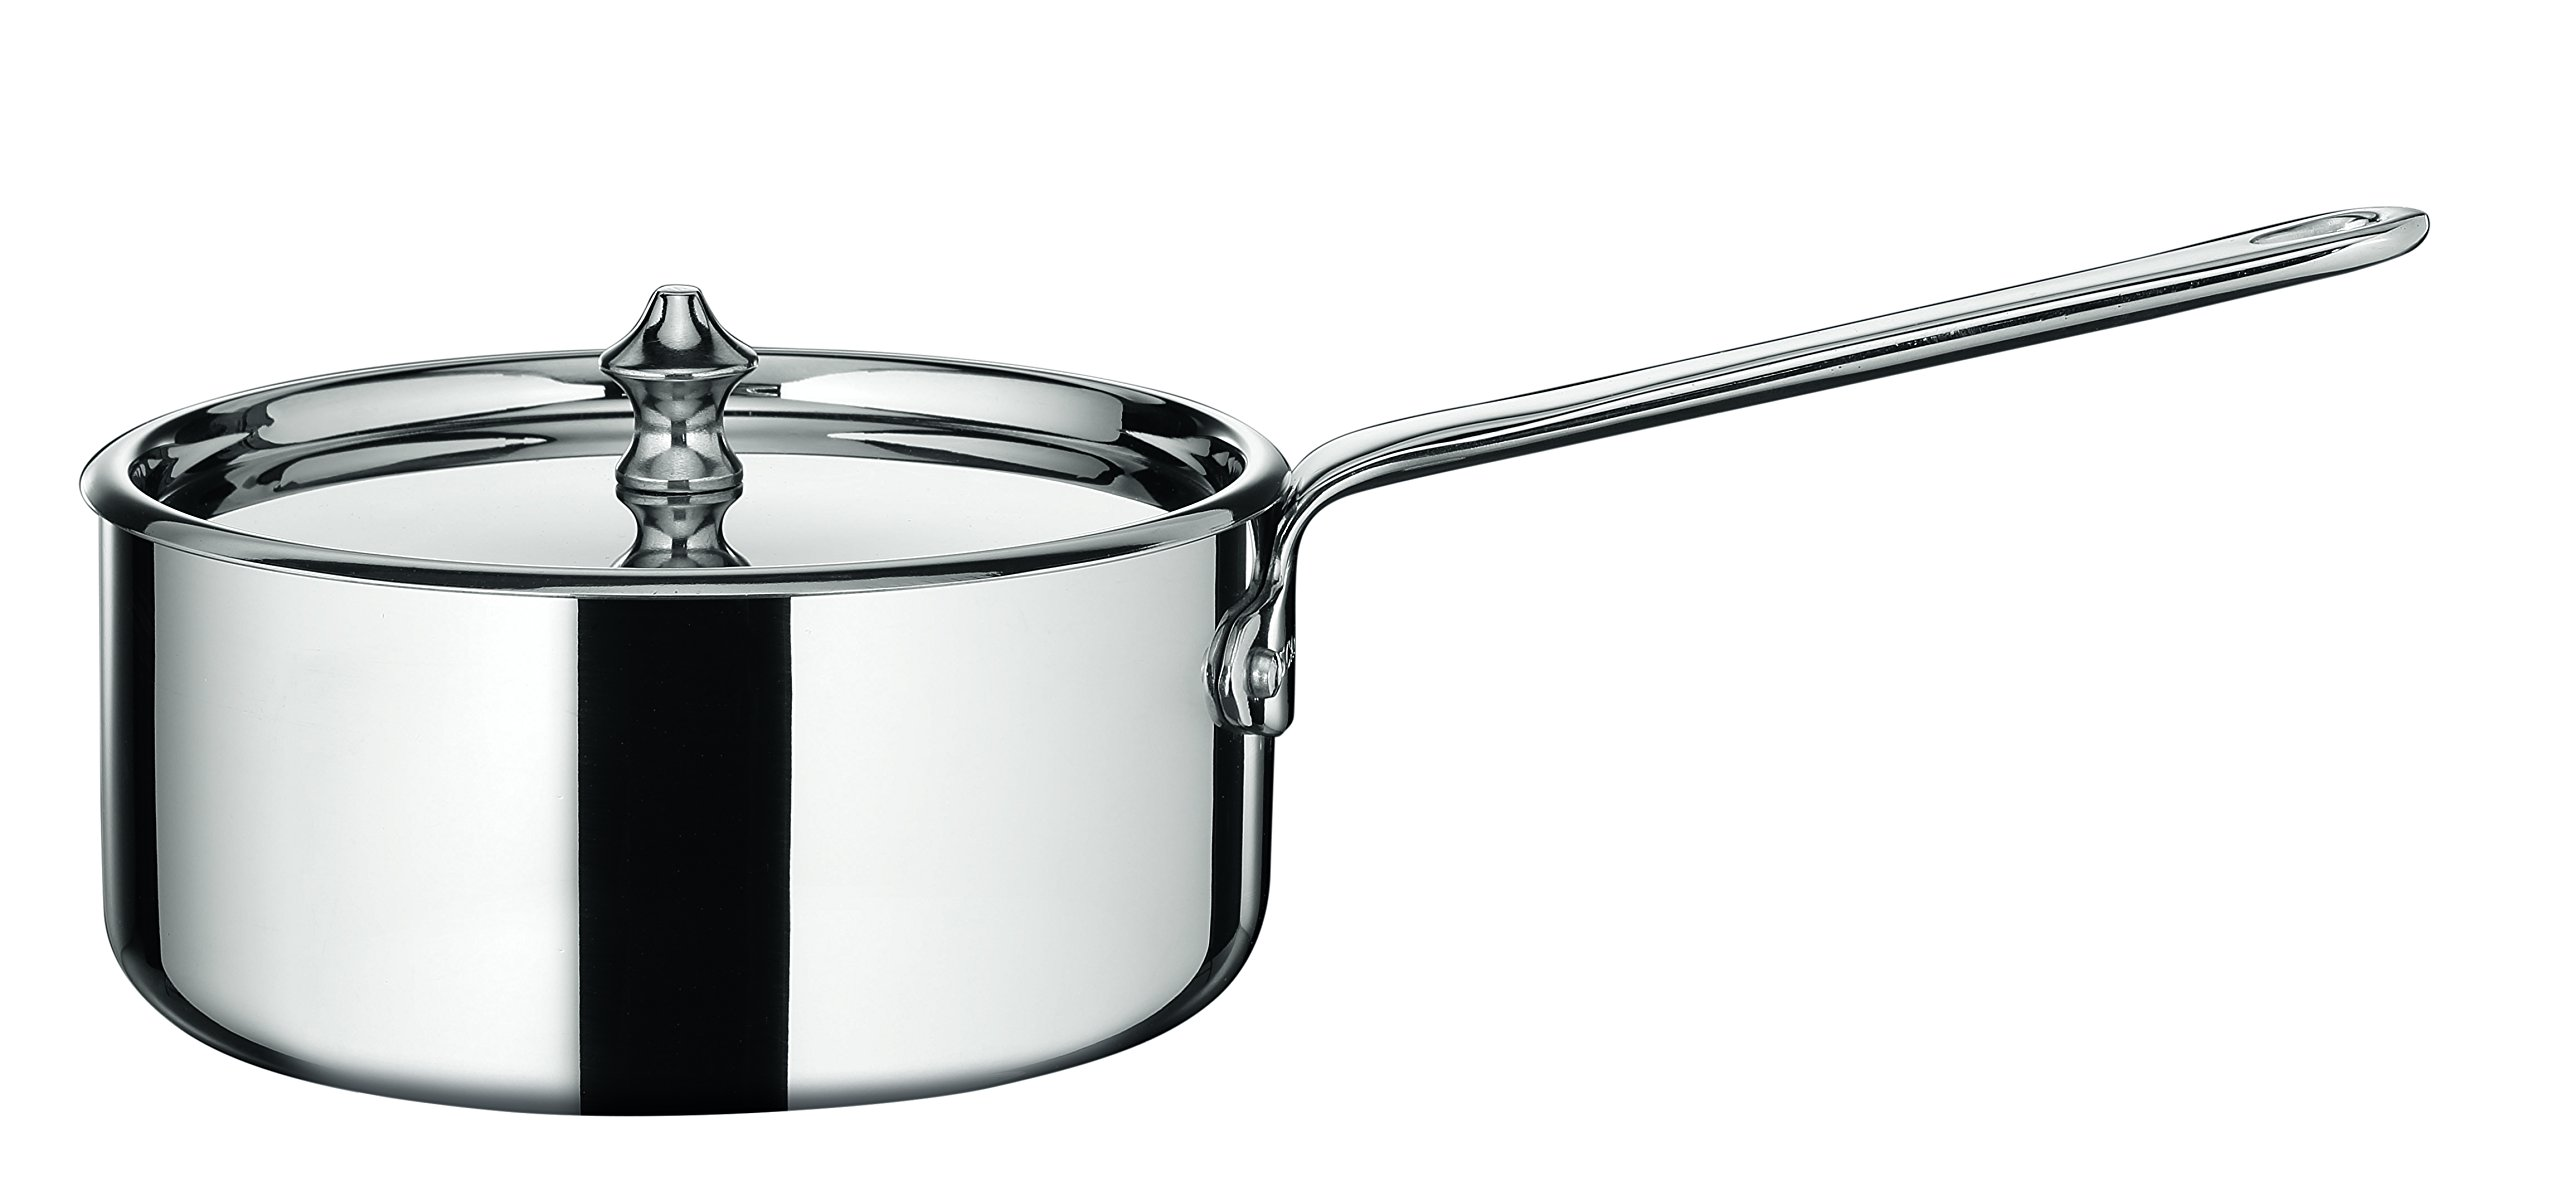 Scanpan 11231400 Maitre 'D Steel Covered Saucepan, 0.95 quart, Metallic